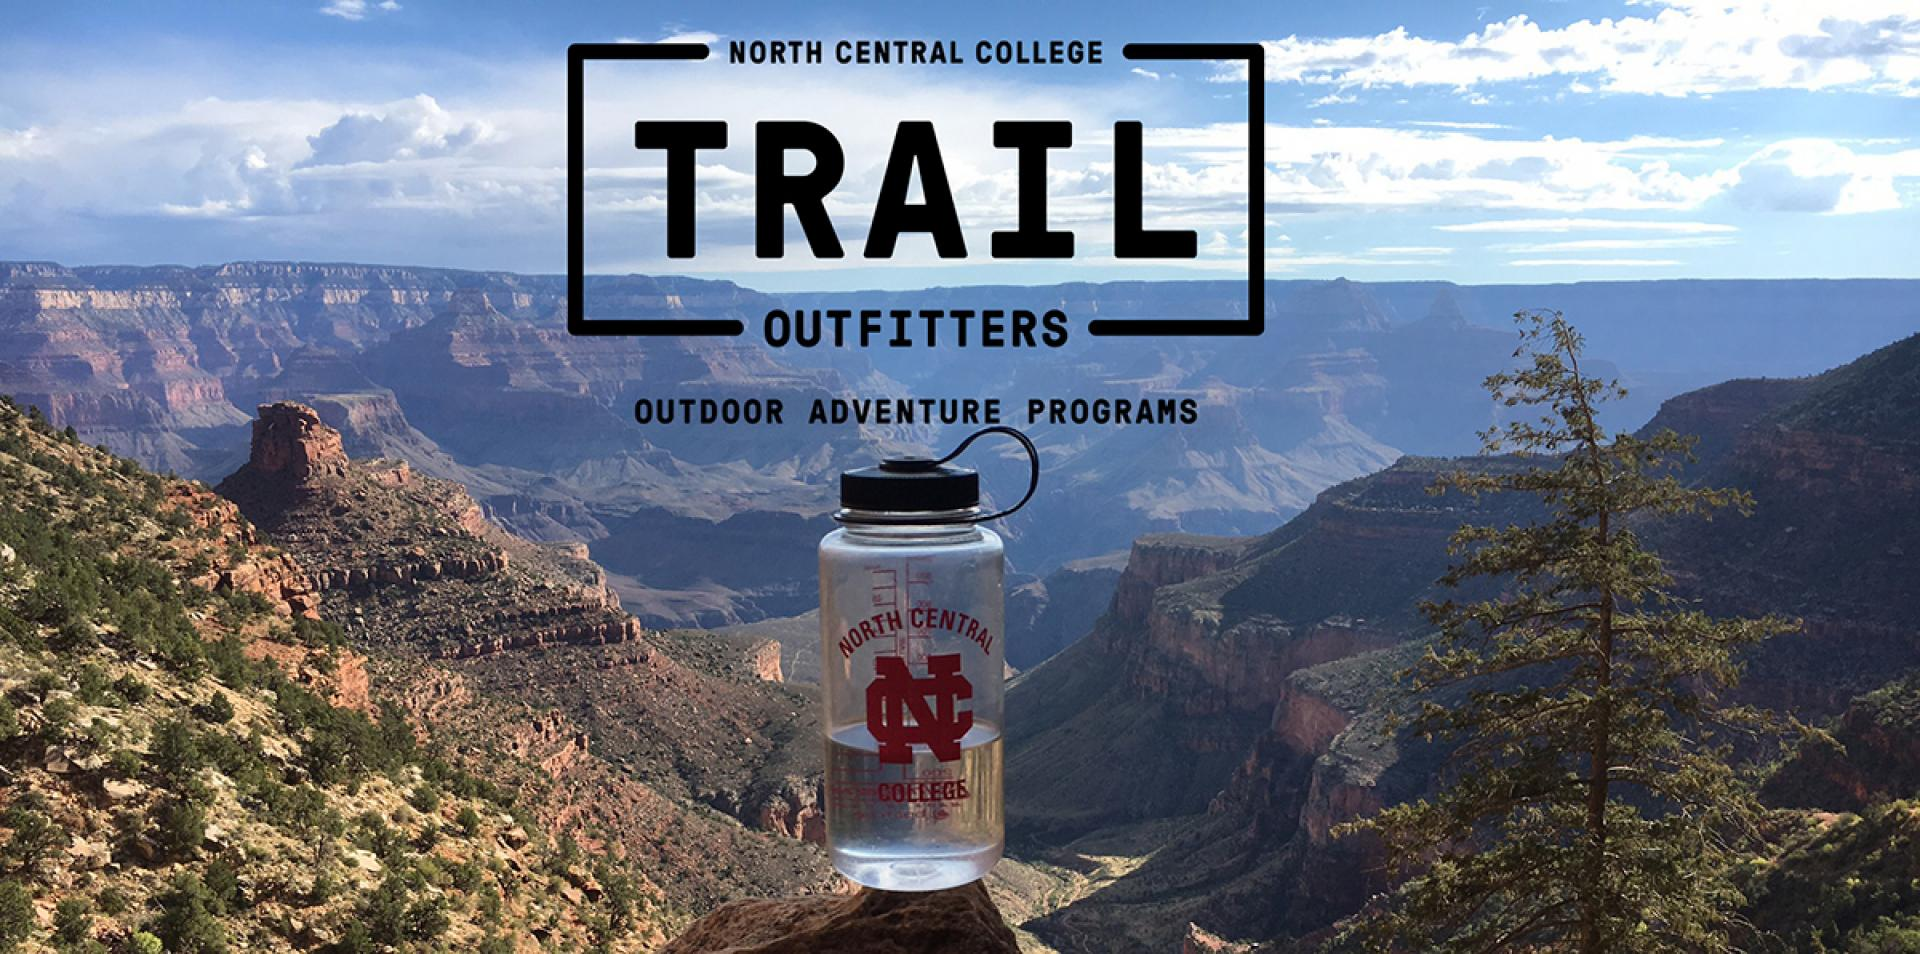 The logo for TRAIL Outfitters from North Central College.